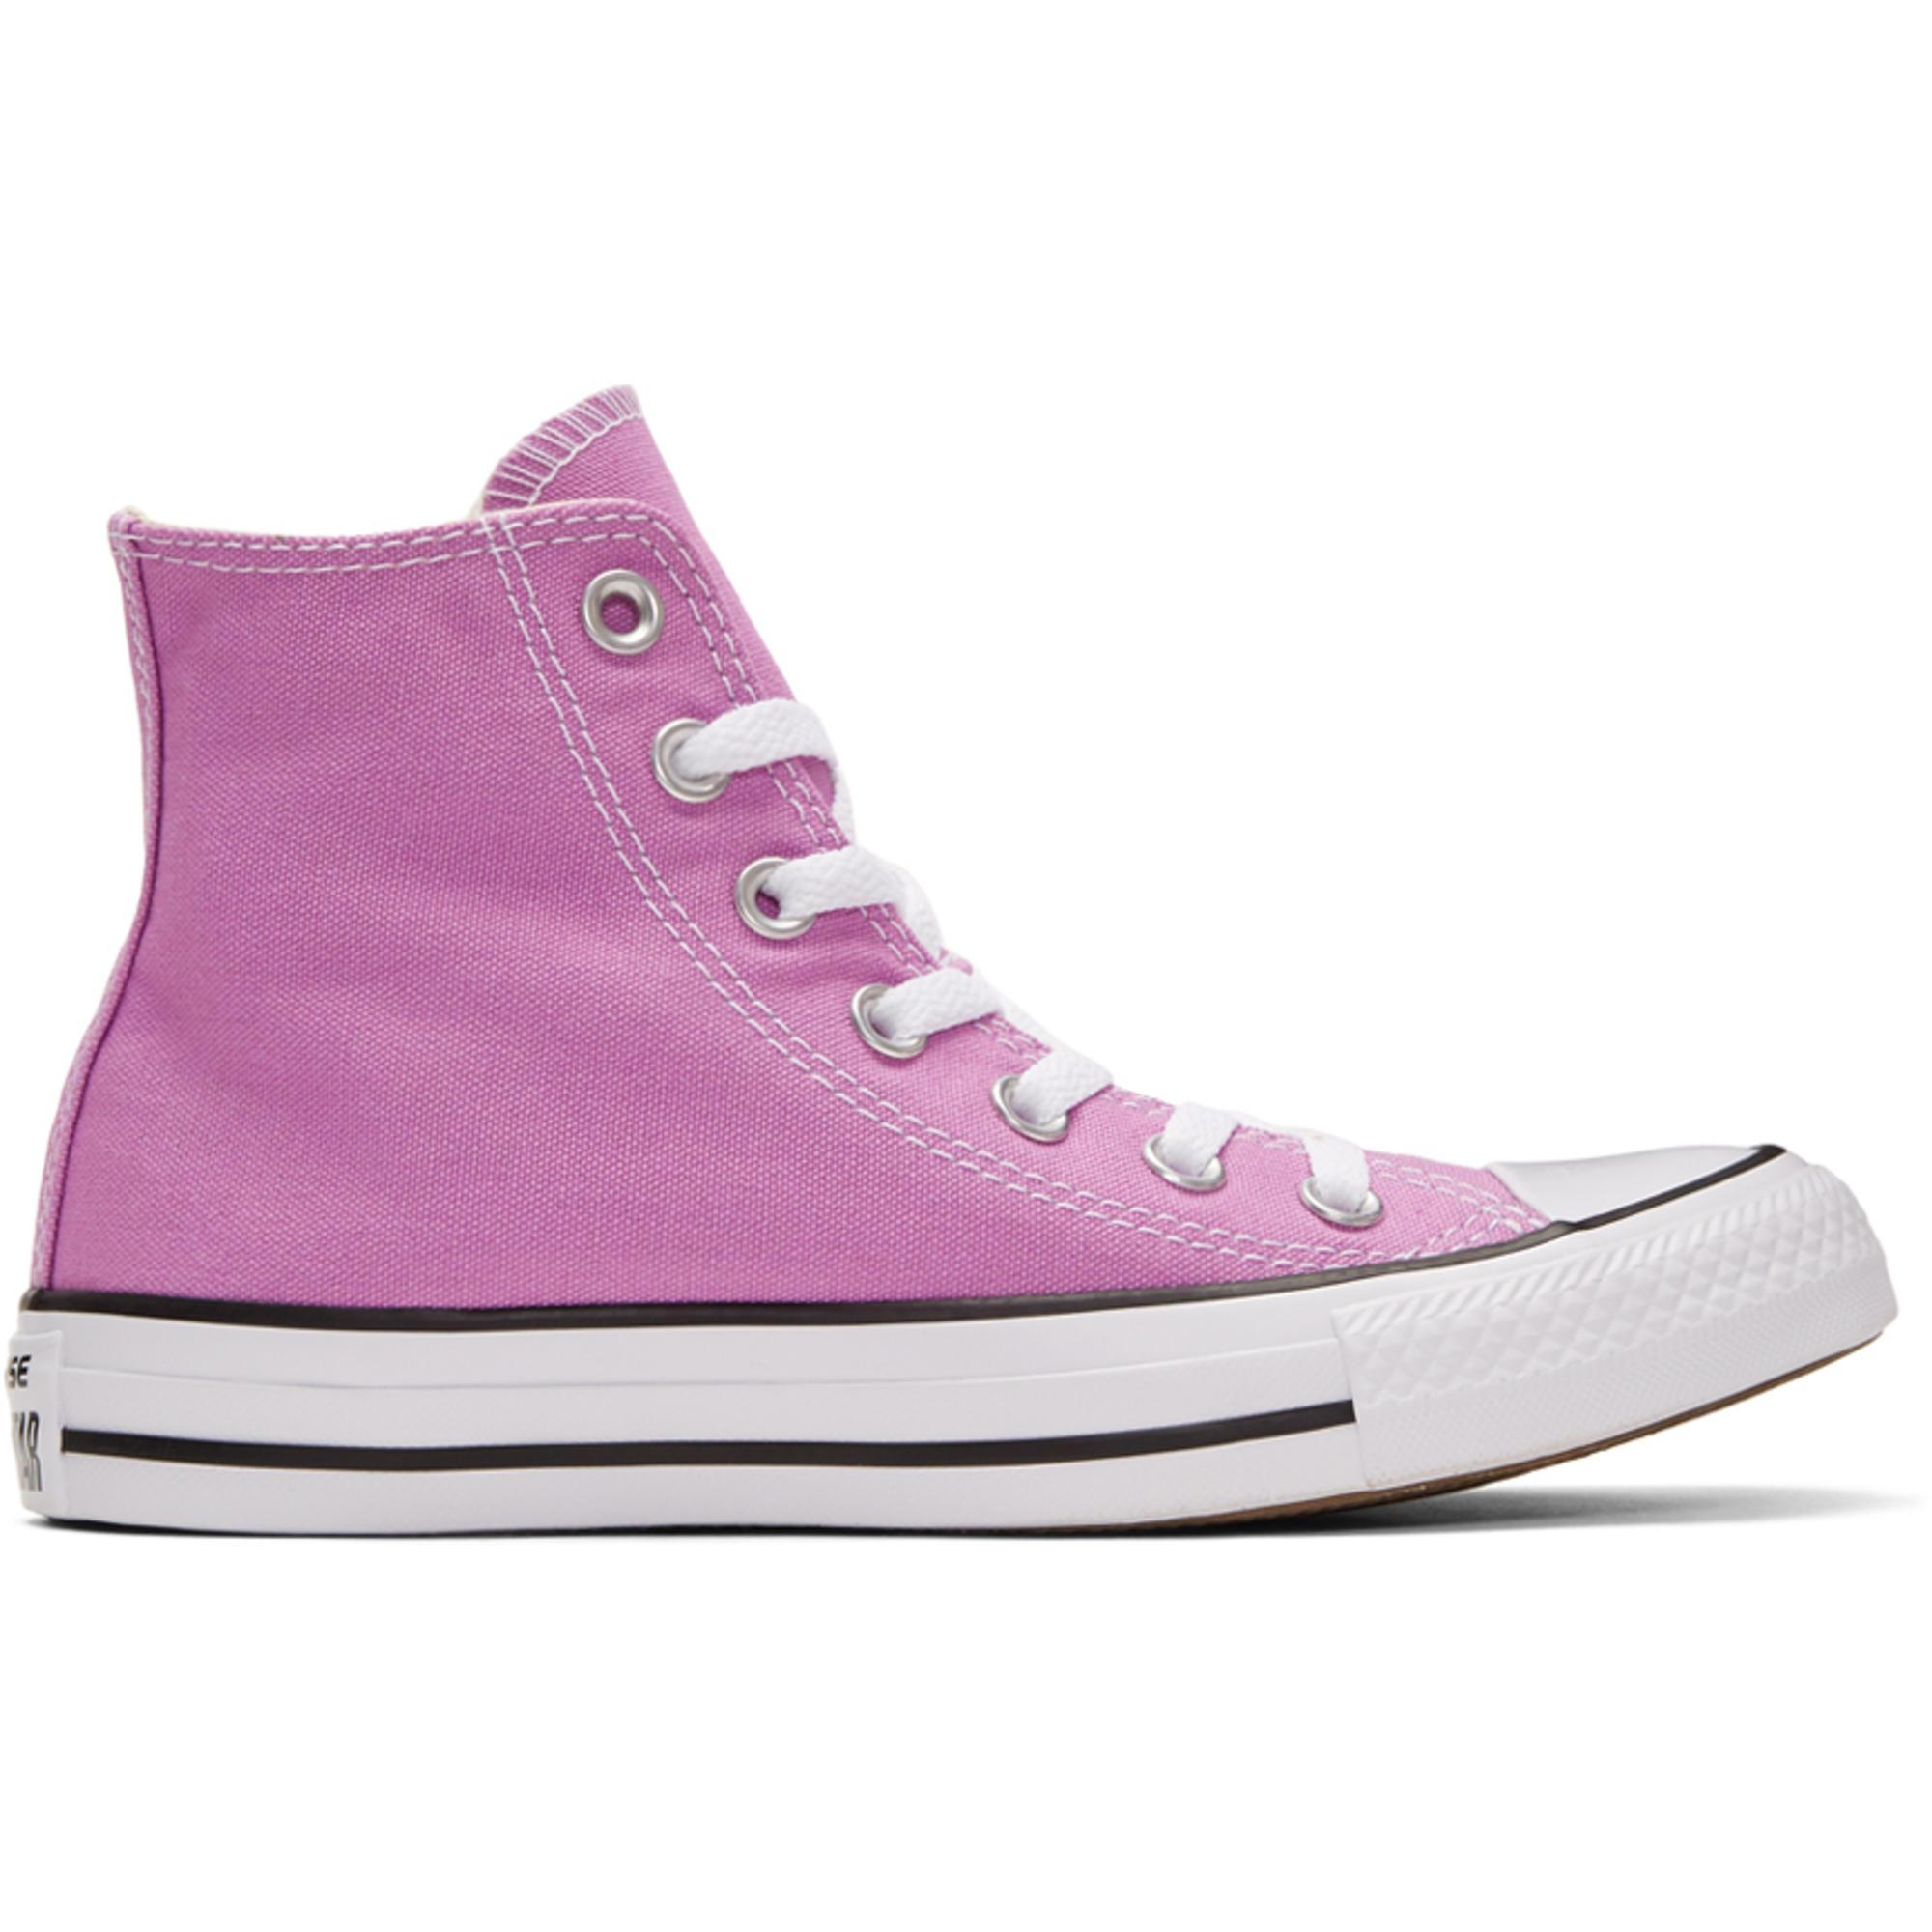 65033903fac9f Baskets montantes violettes Classic Chuck Taylor All Star OX ...